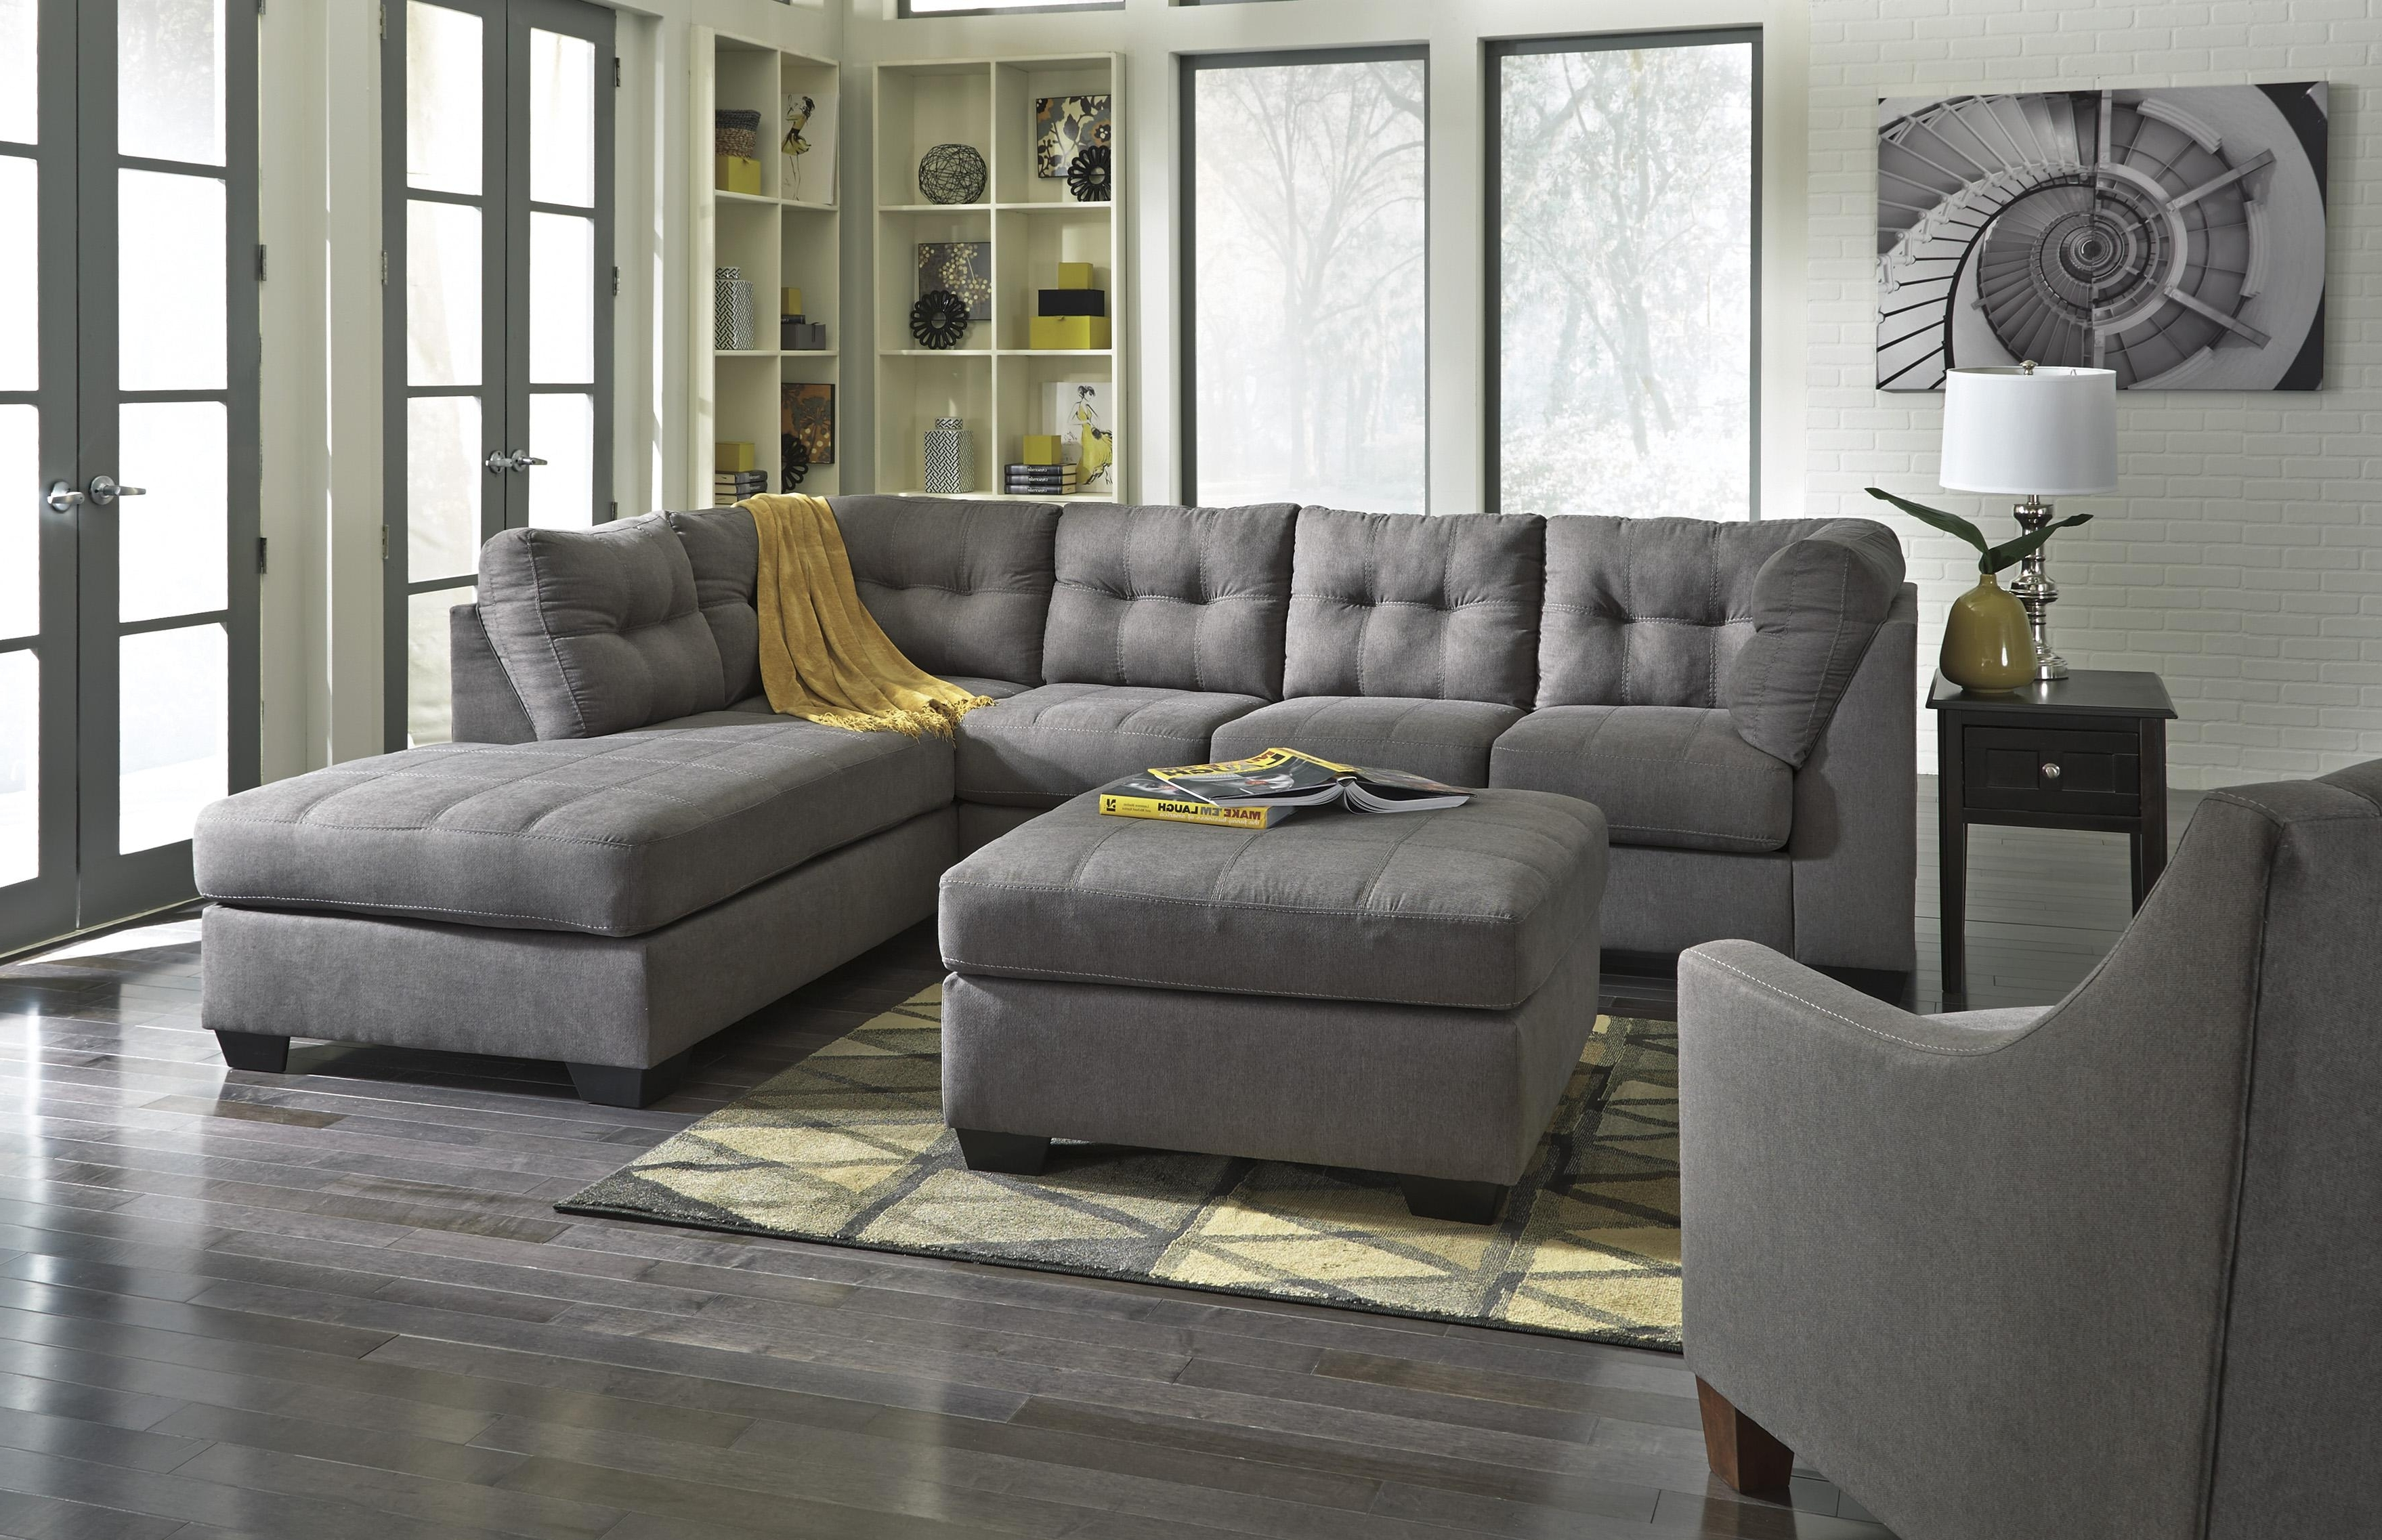 Furniture : Sectional Chaise Lounge Sofa Double Along With In Recent Sectionals With Chaise And Ottoman (View 7 of 15)